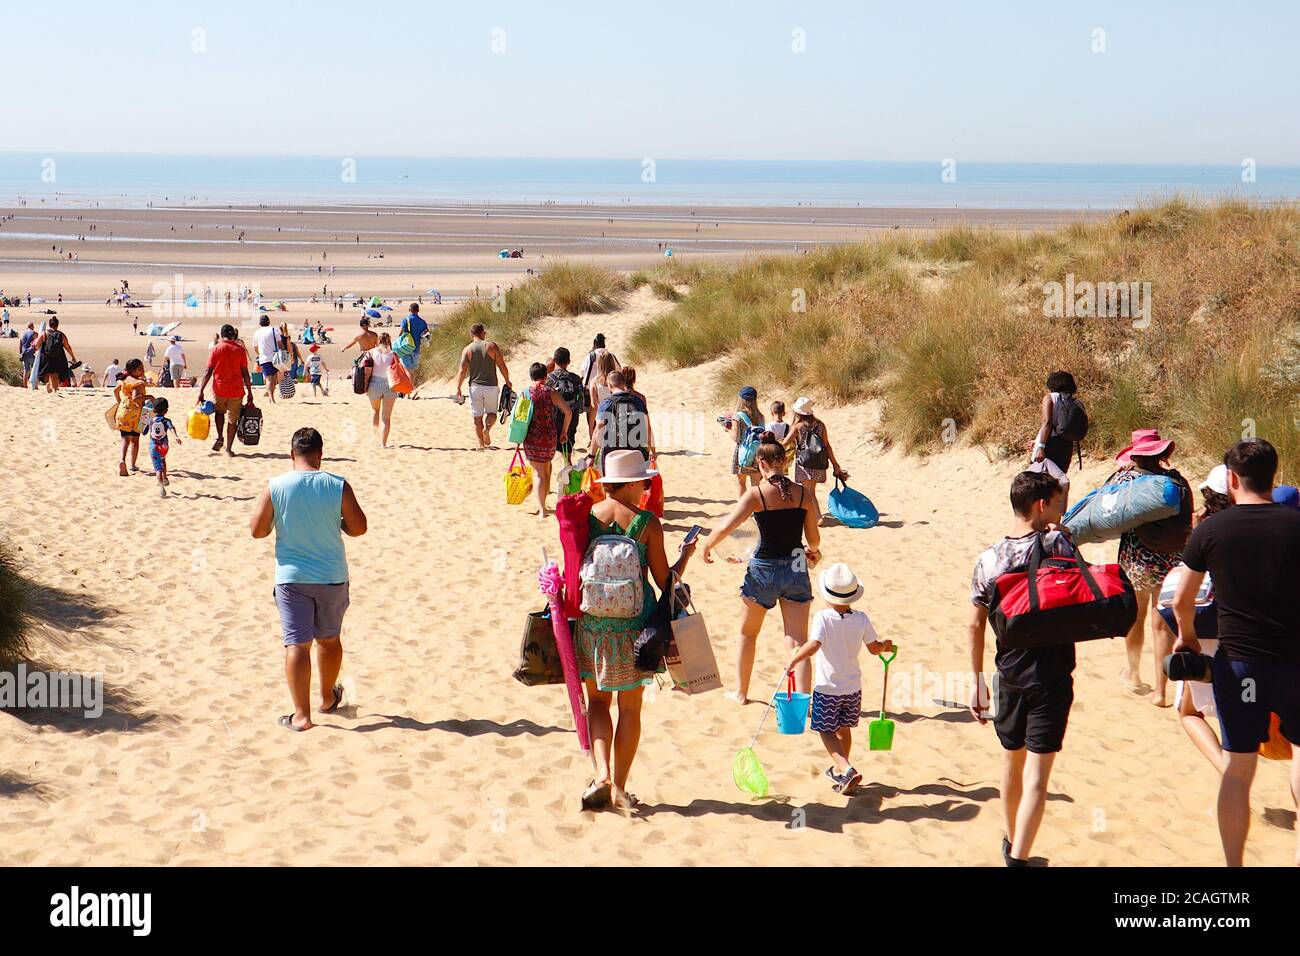 Camber, East Sussex, UK. 07 Aug, 2020. UK Weather: Likely to be one of the hottest days of the year so far with the Met Office predicting temperatures into the 30's, Camber Sands in East Sussex is expecting large crowds of people to take advantage of the golden sandy beaches. Hundreds arrive with buckets, shovels, tents and iceboxes. Photo Credit: Paul Lawrenson-PAL Media/Alamy Live News Stock Photo